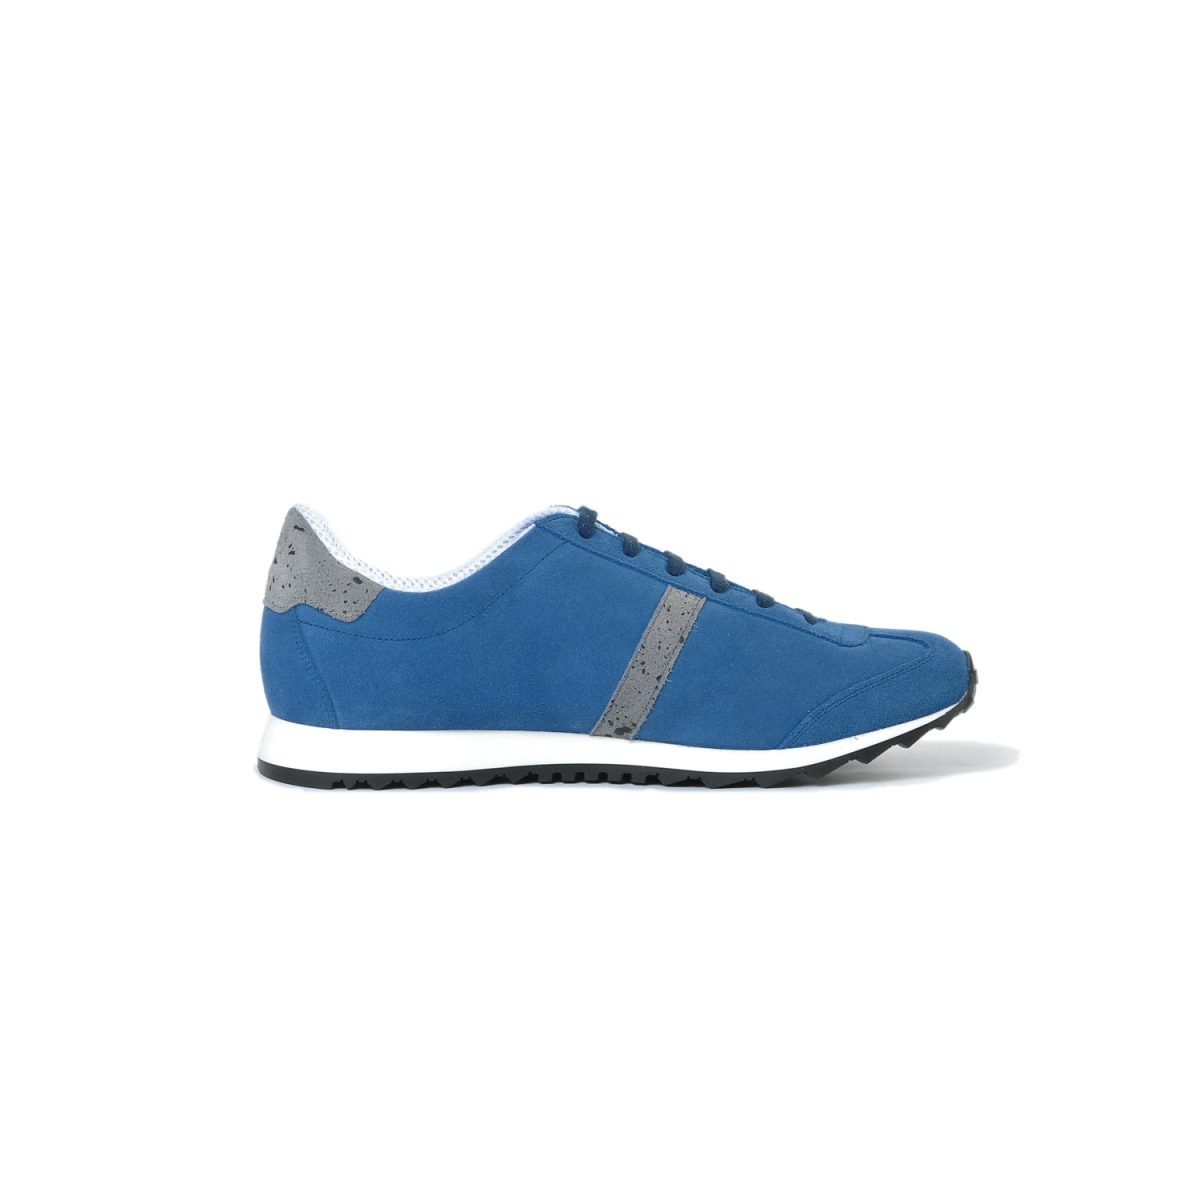 Tisza shoes - Martfű - Royal-splash grey